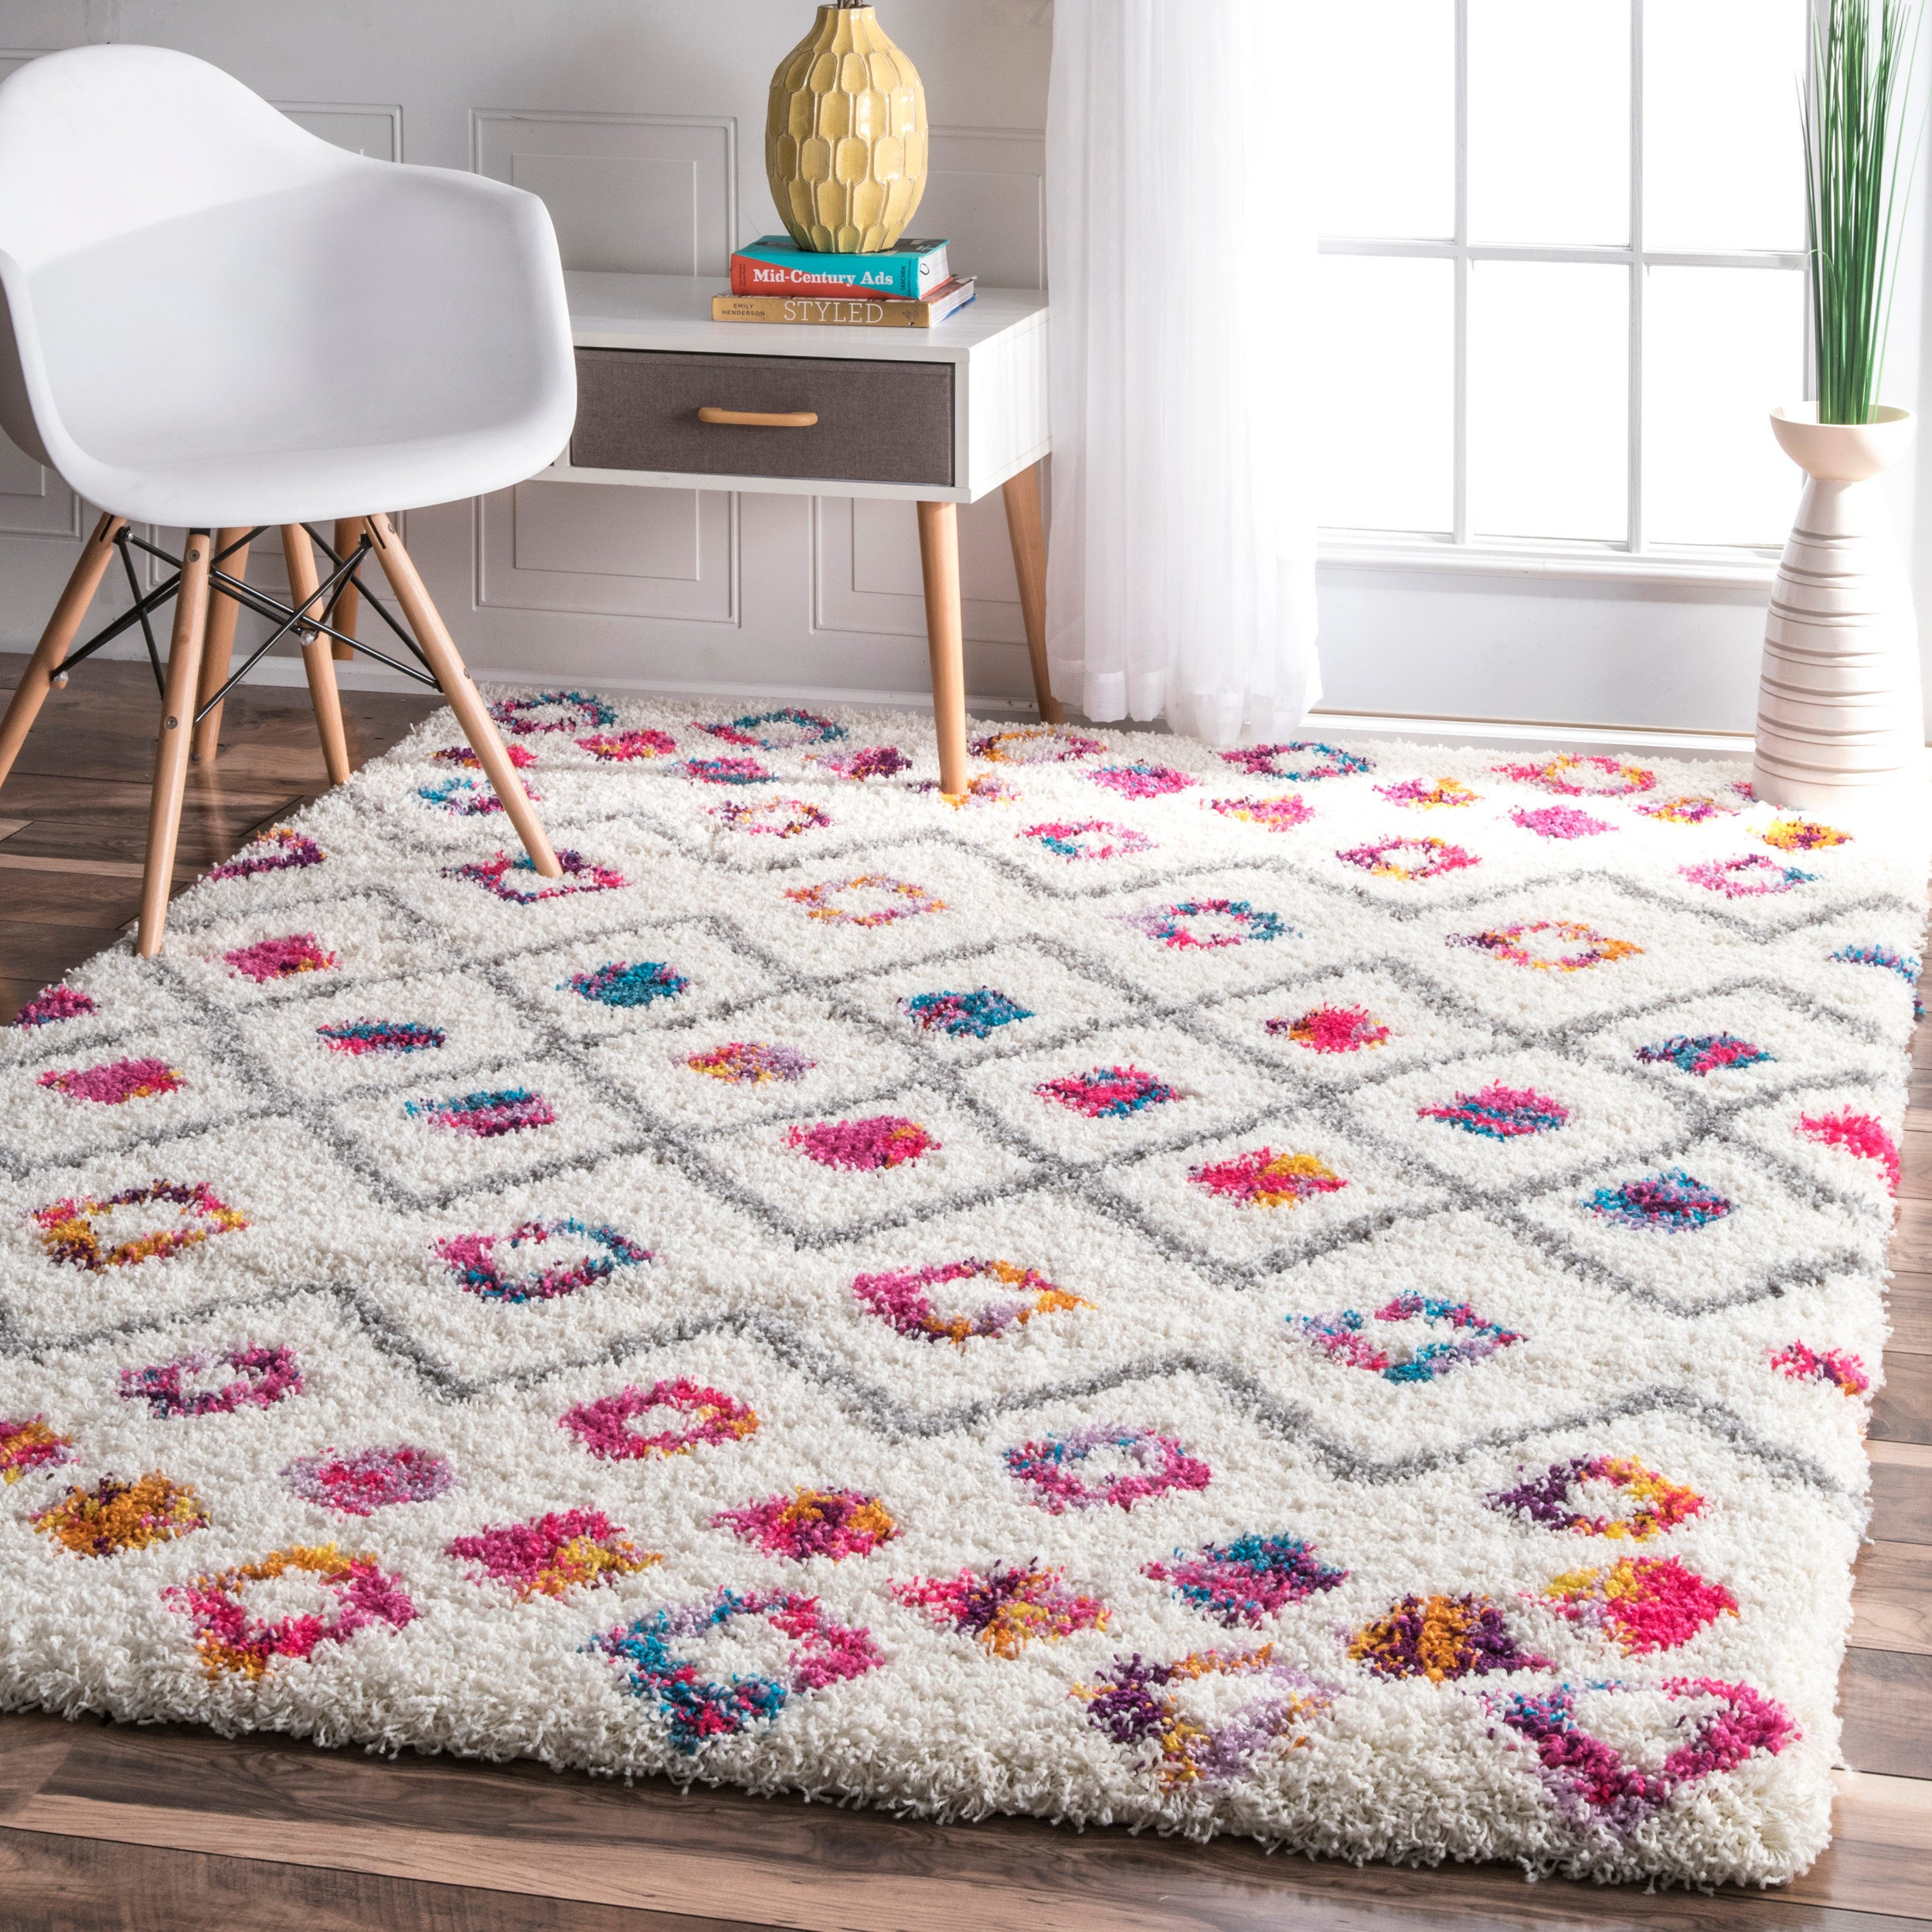 multicolored overstock today rug vintage x shipping product home bohemian distressed monaco garden safavieh free